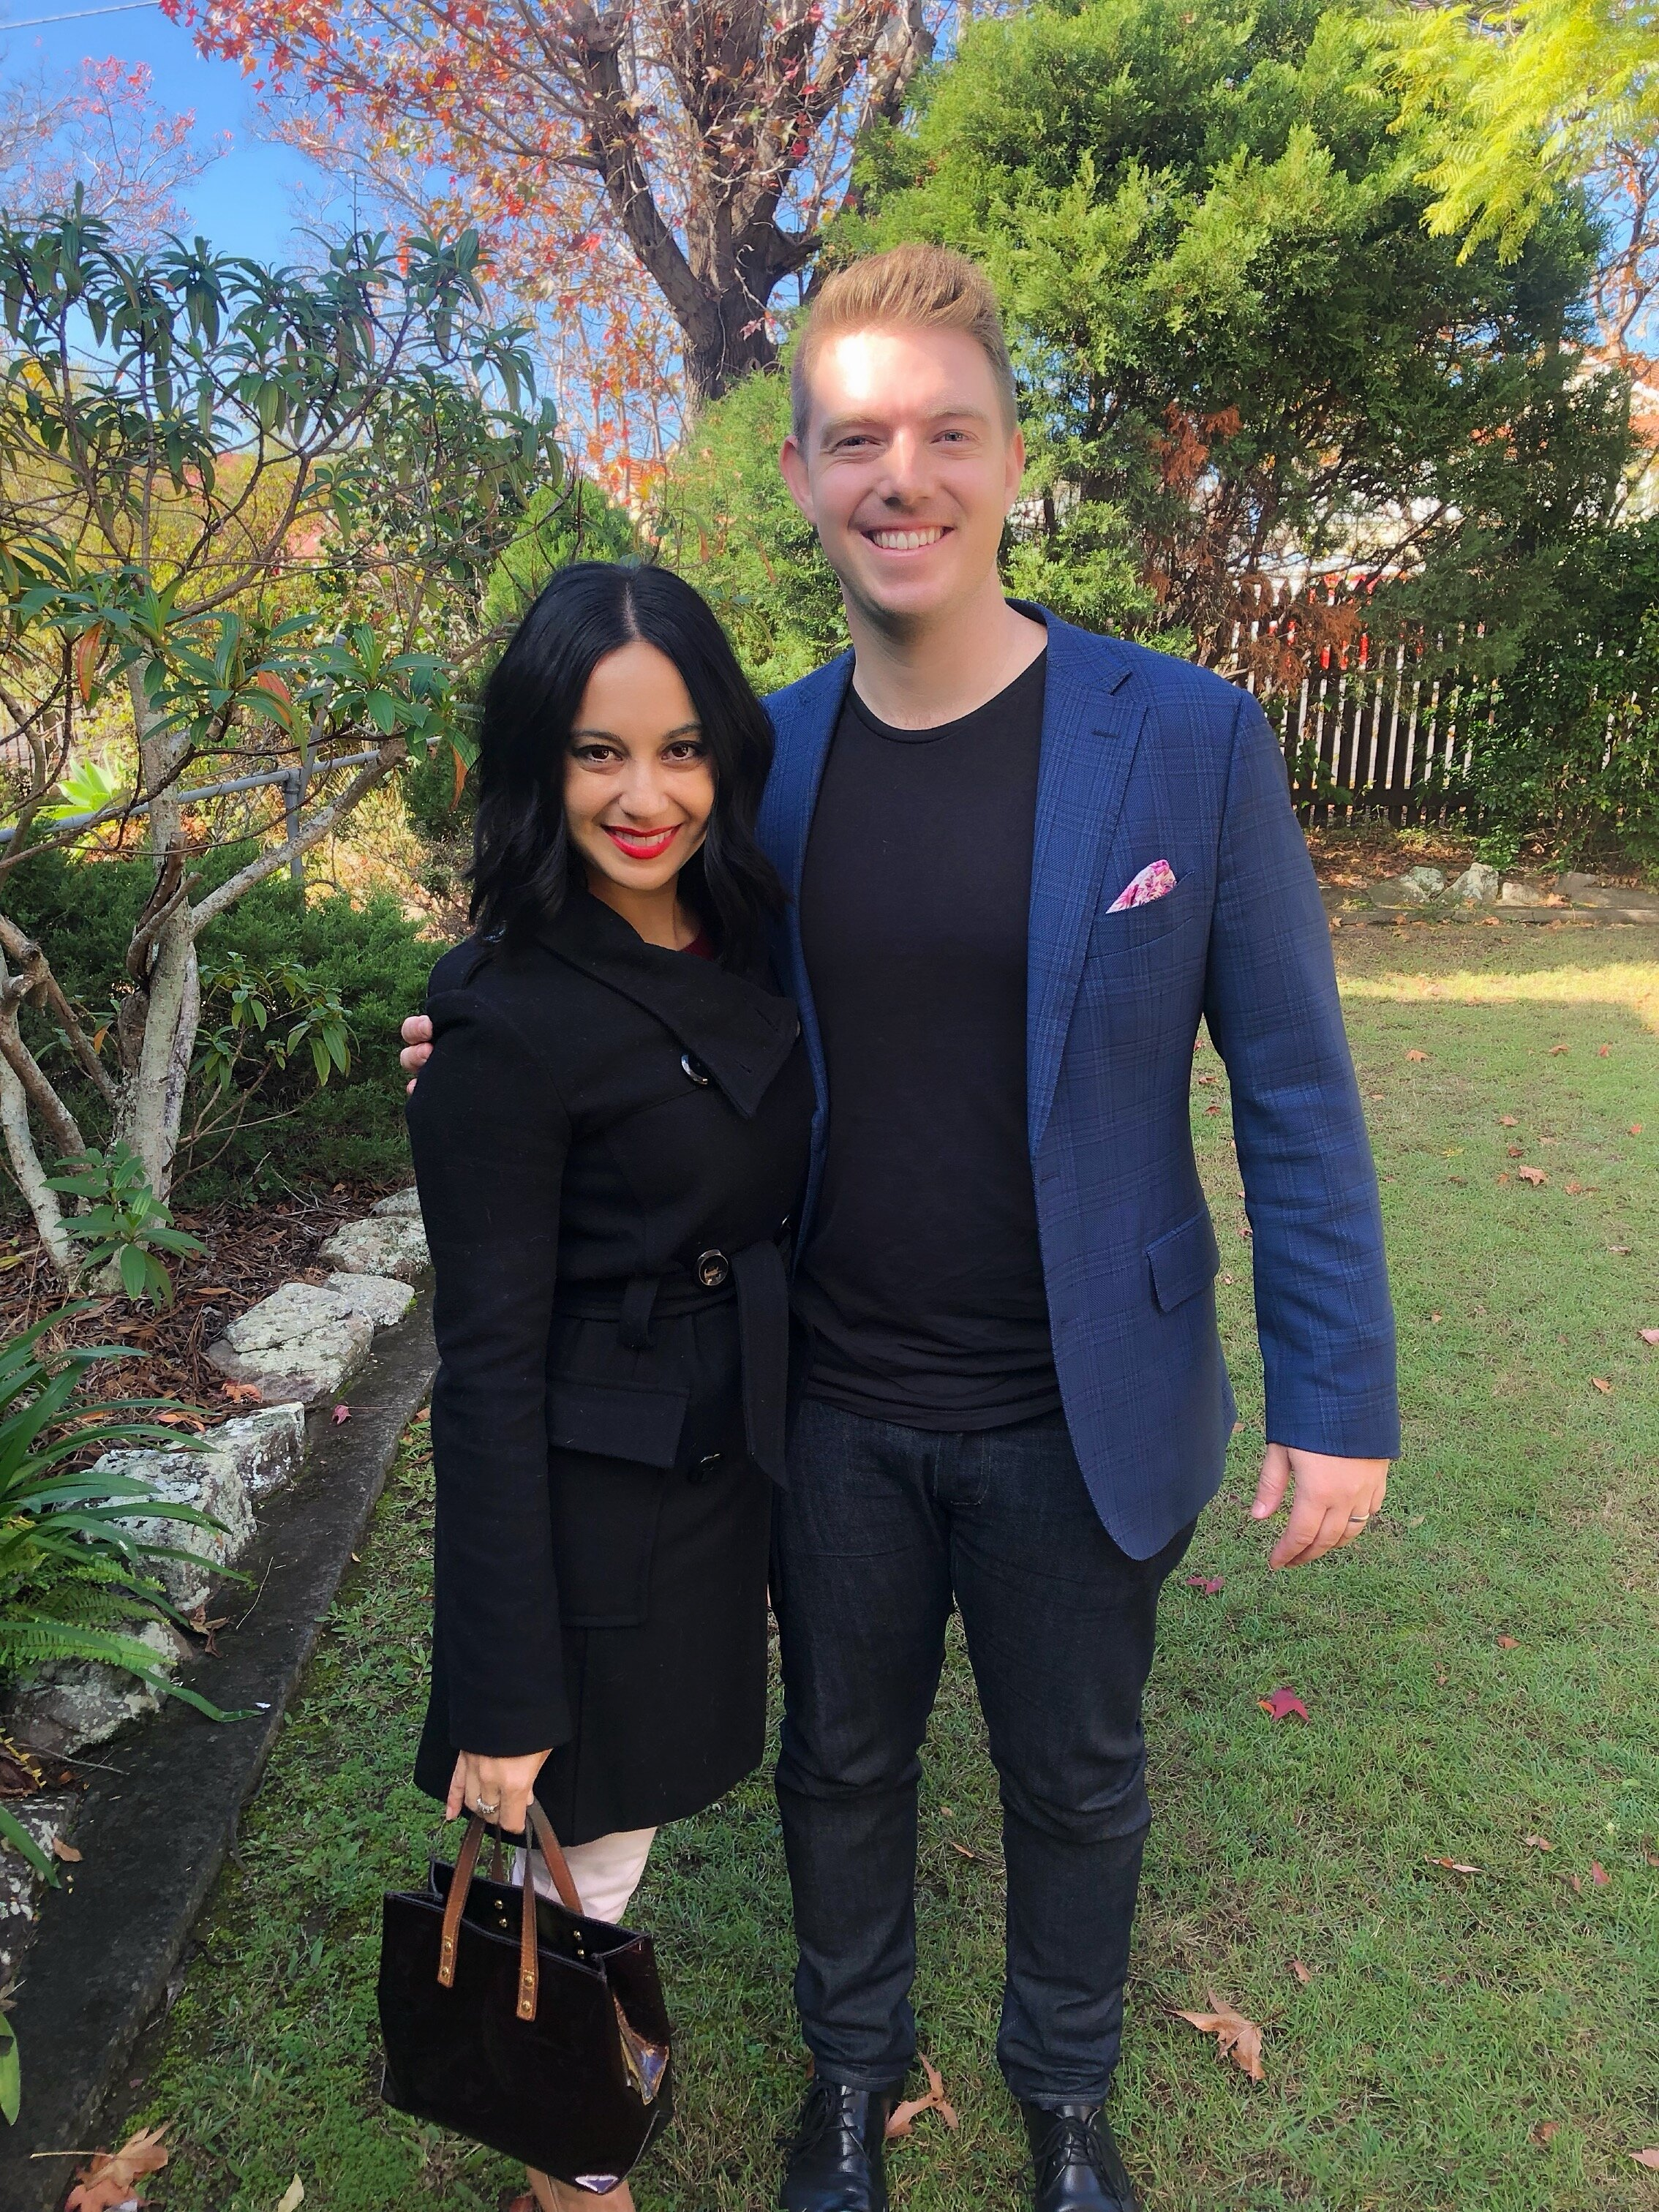 Wendy pictured with Jordan McLennan of Style Estate Agents in Clayfield.